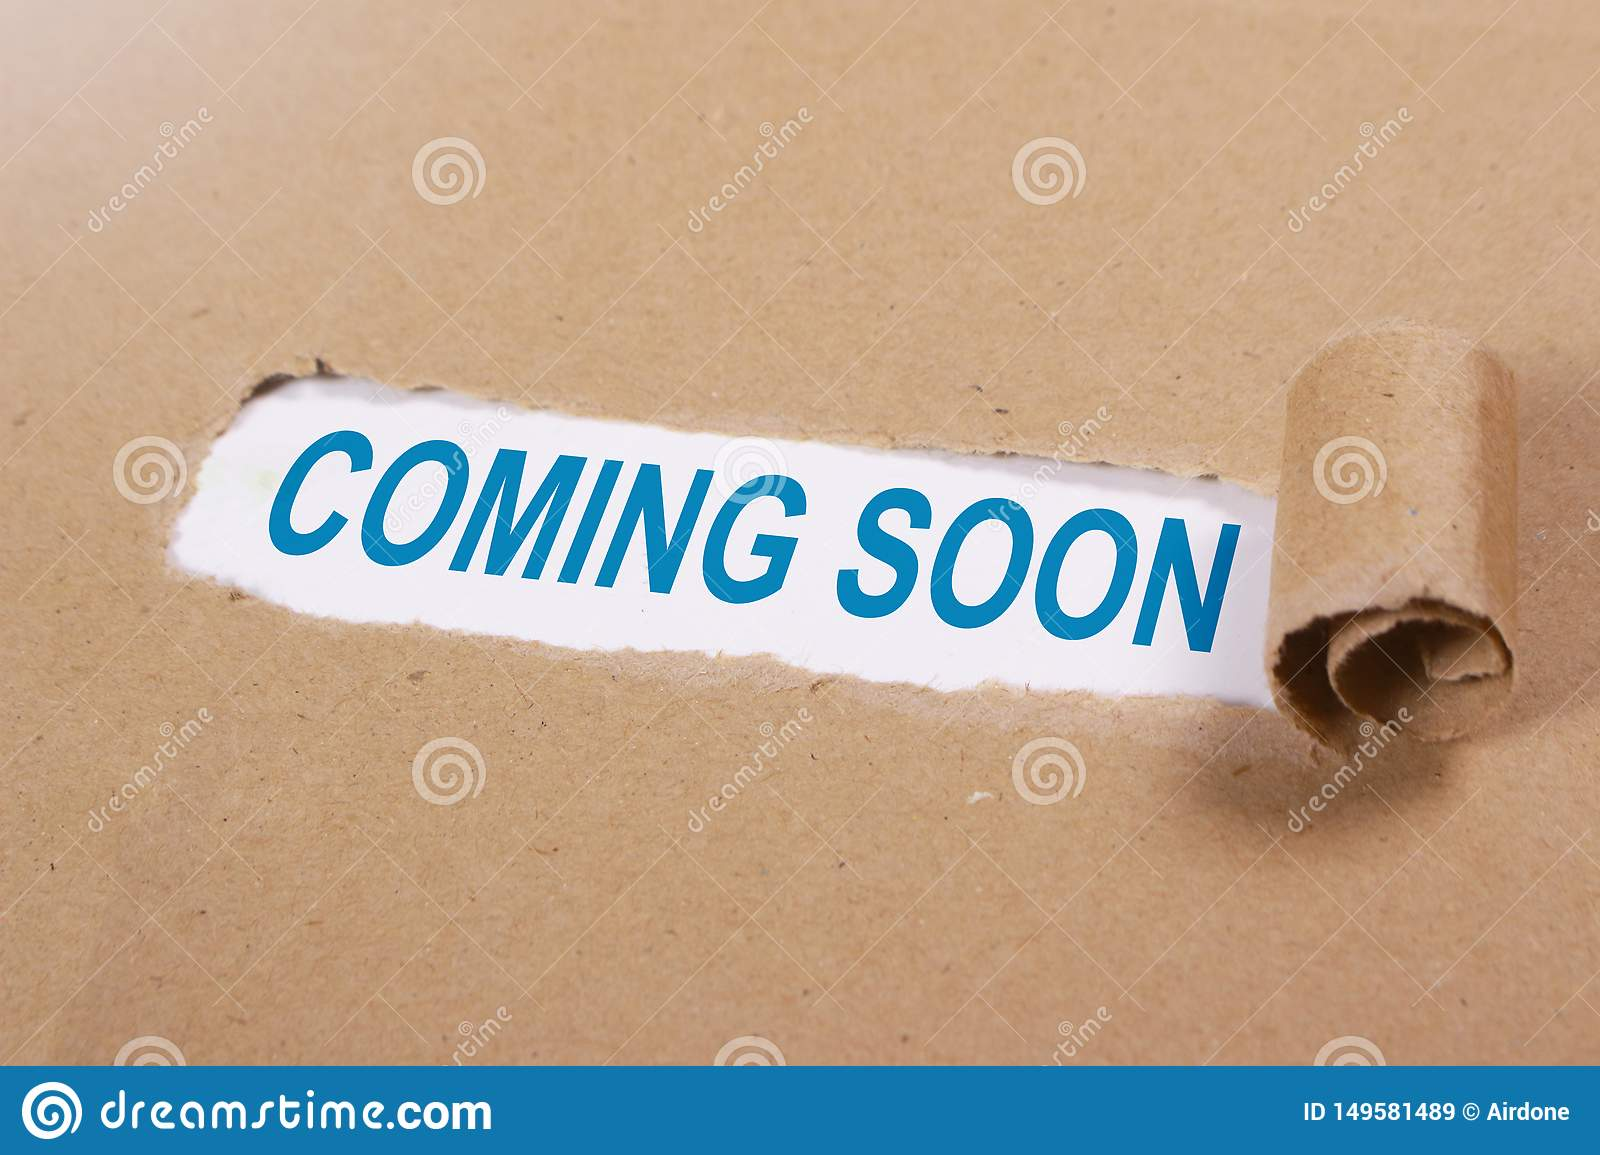 Coming Soon Words Typography Concept Stock Image Image Of Notification Development 149581489